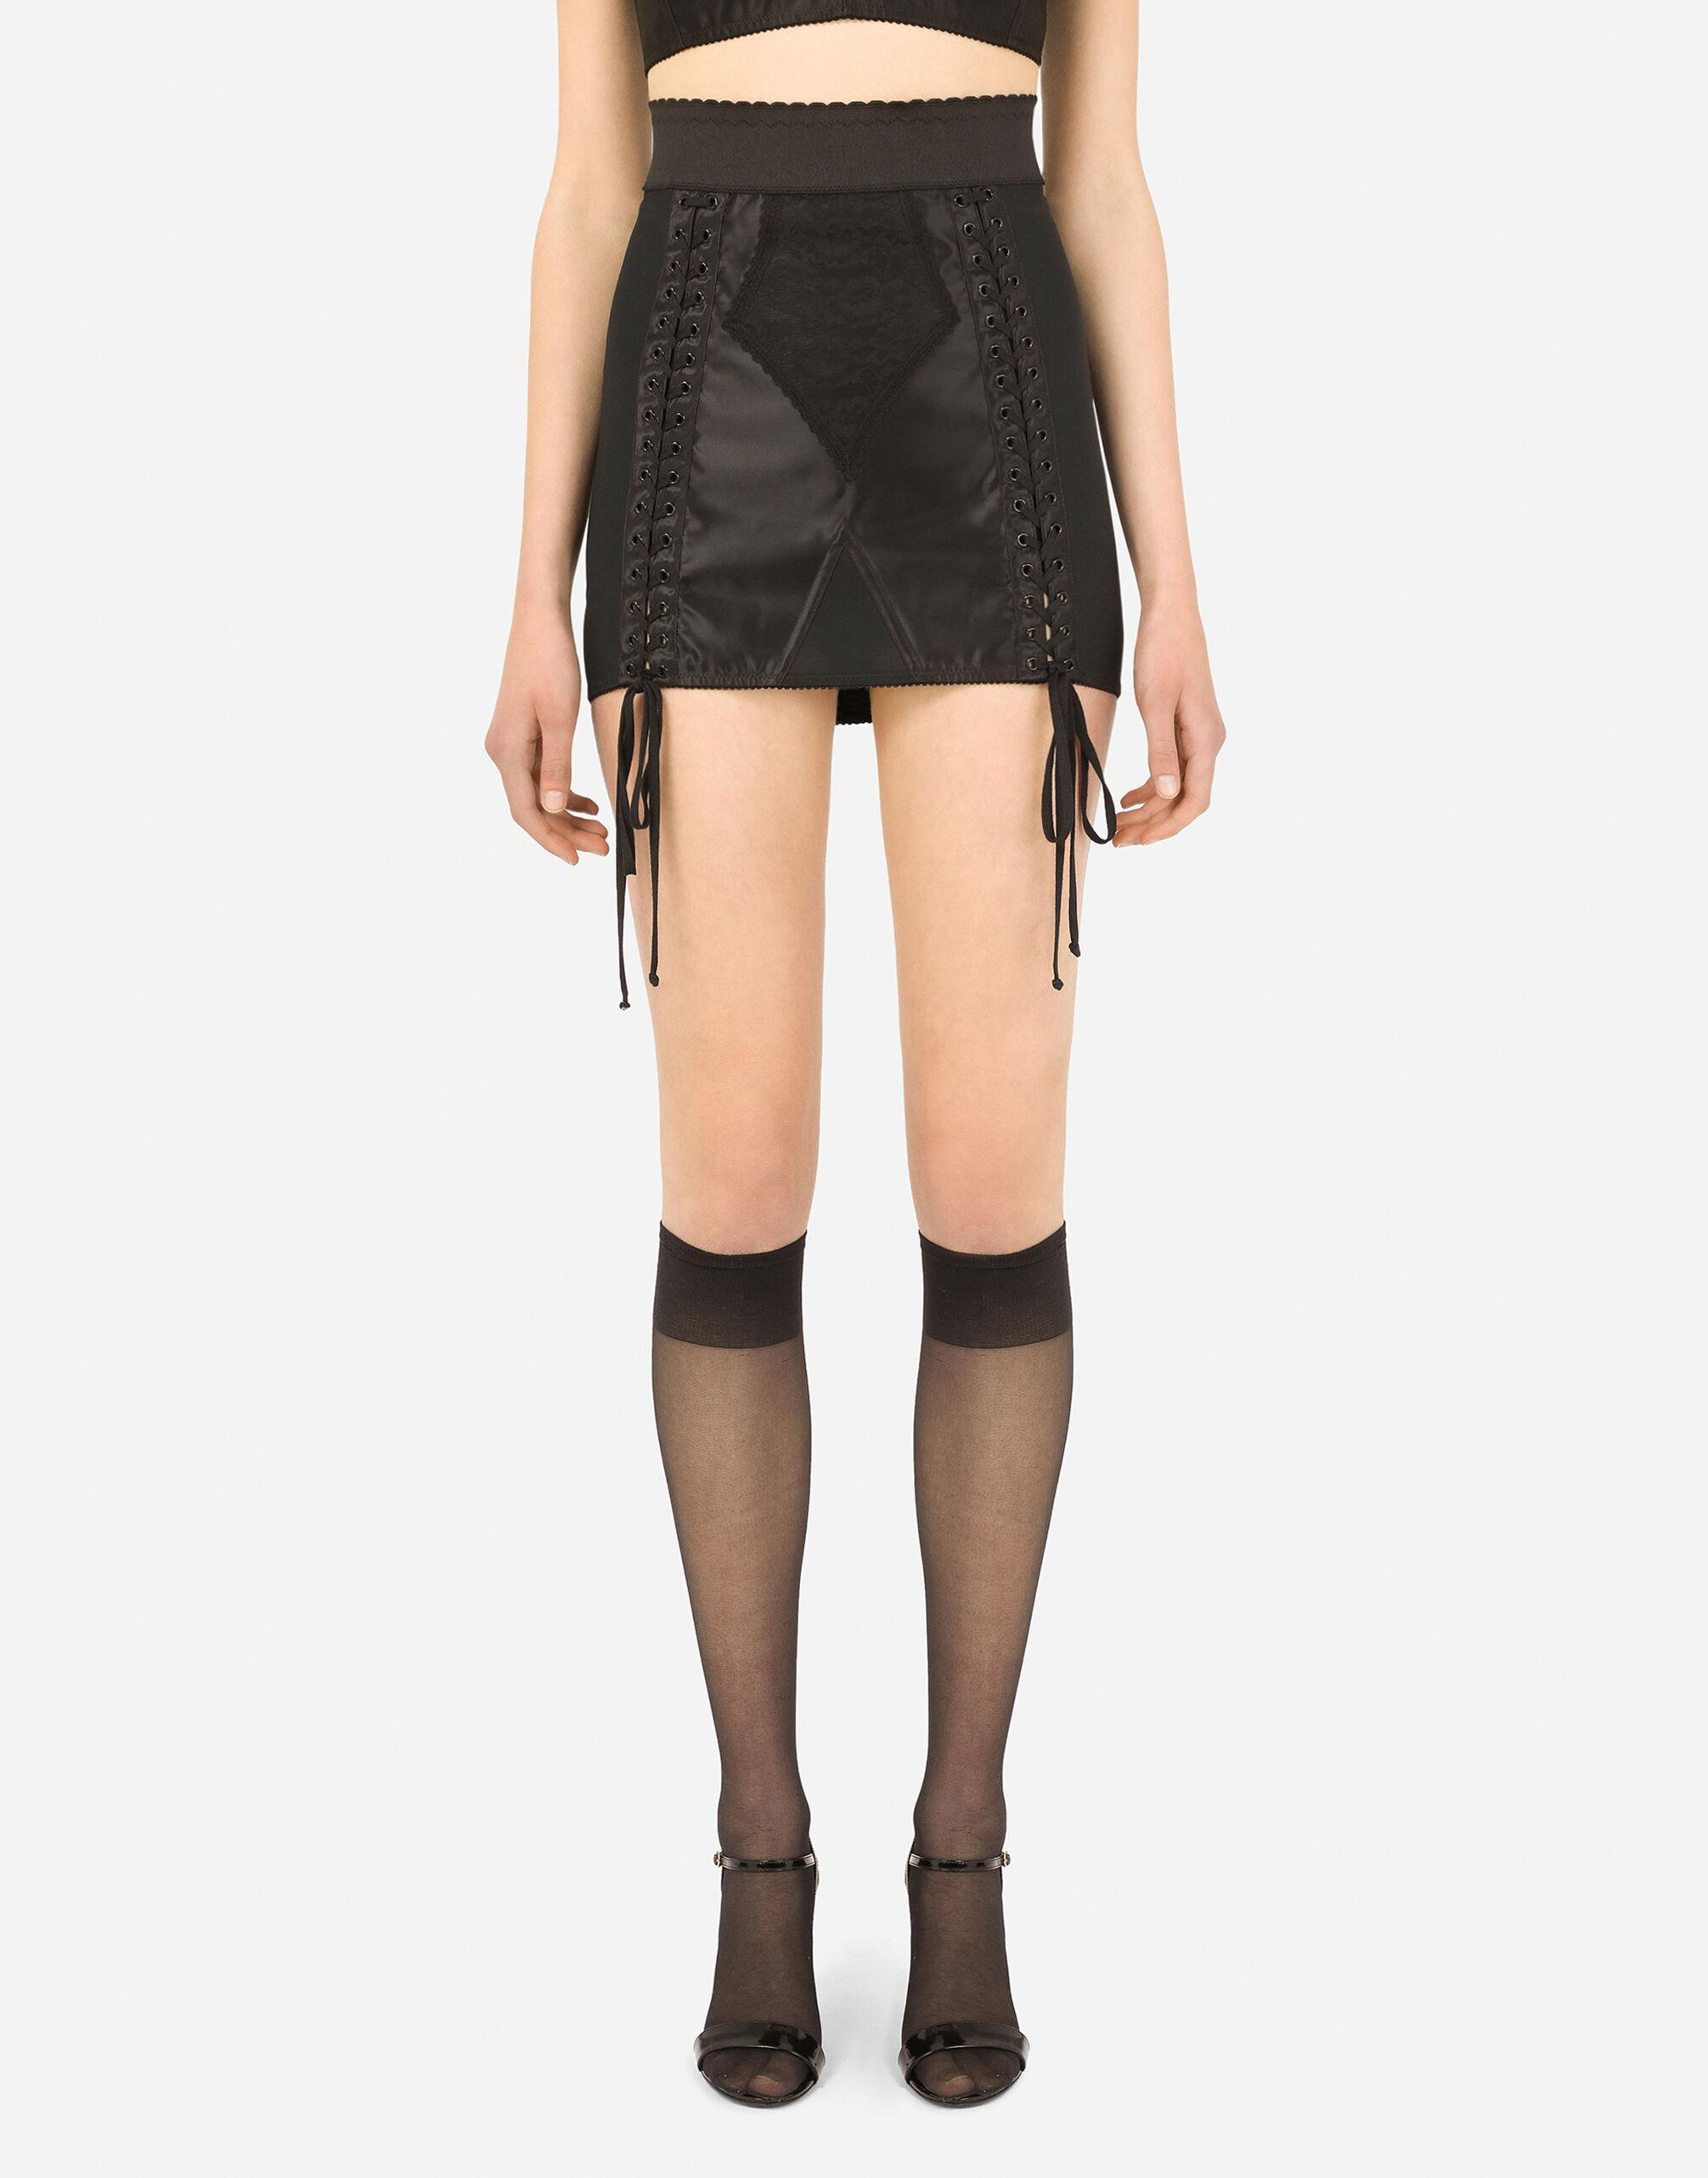 Corset-style miniskirt with laces and eyelets